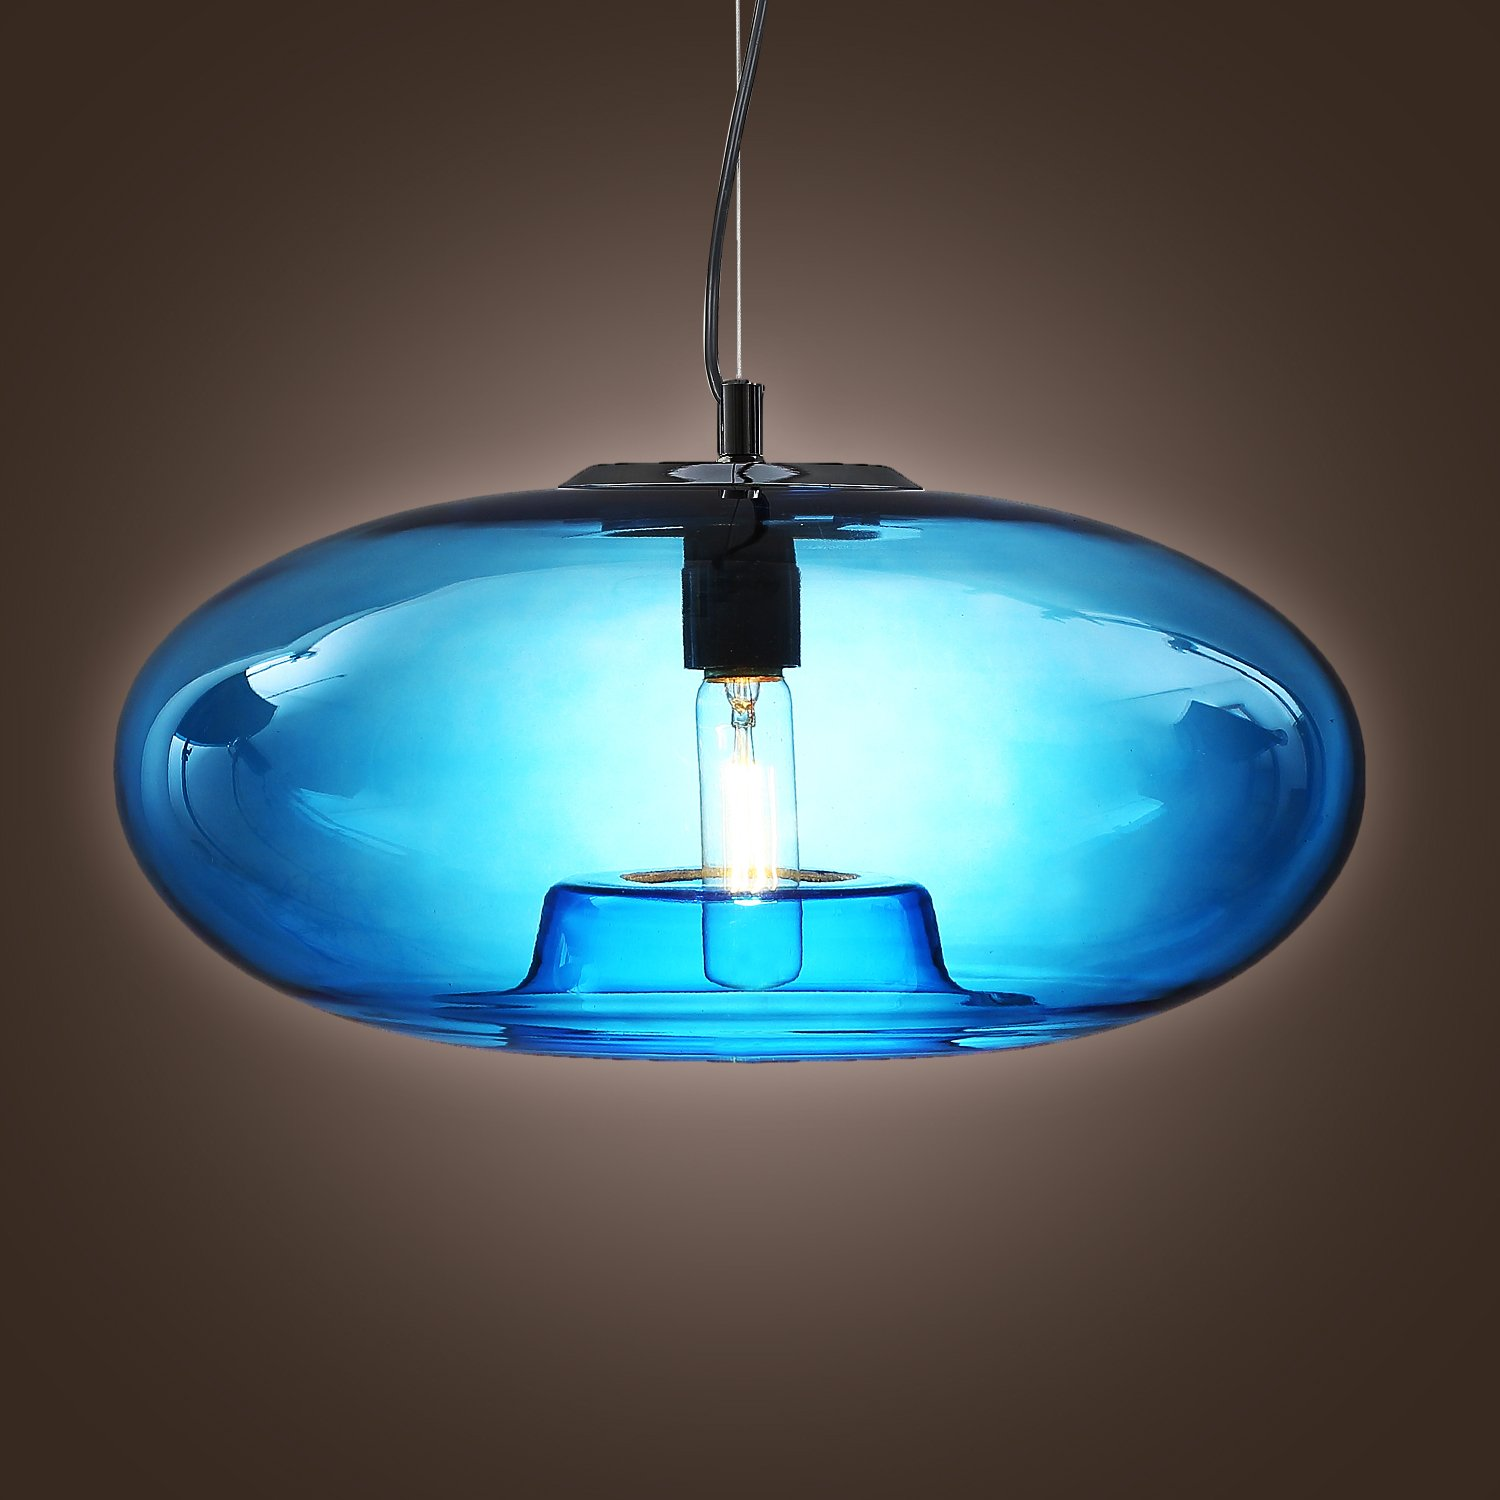 Lightinthebox vintage glass pendant light in blue bubble modern lightinthebox vintage glass pendant light in blue bubble modern design mini style ceiling light fixture for dining room bedroom living room aloadofball Choice Image